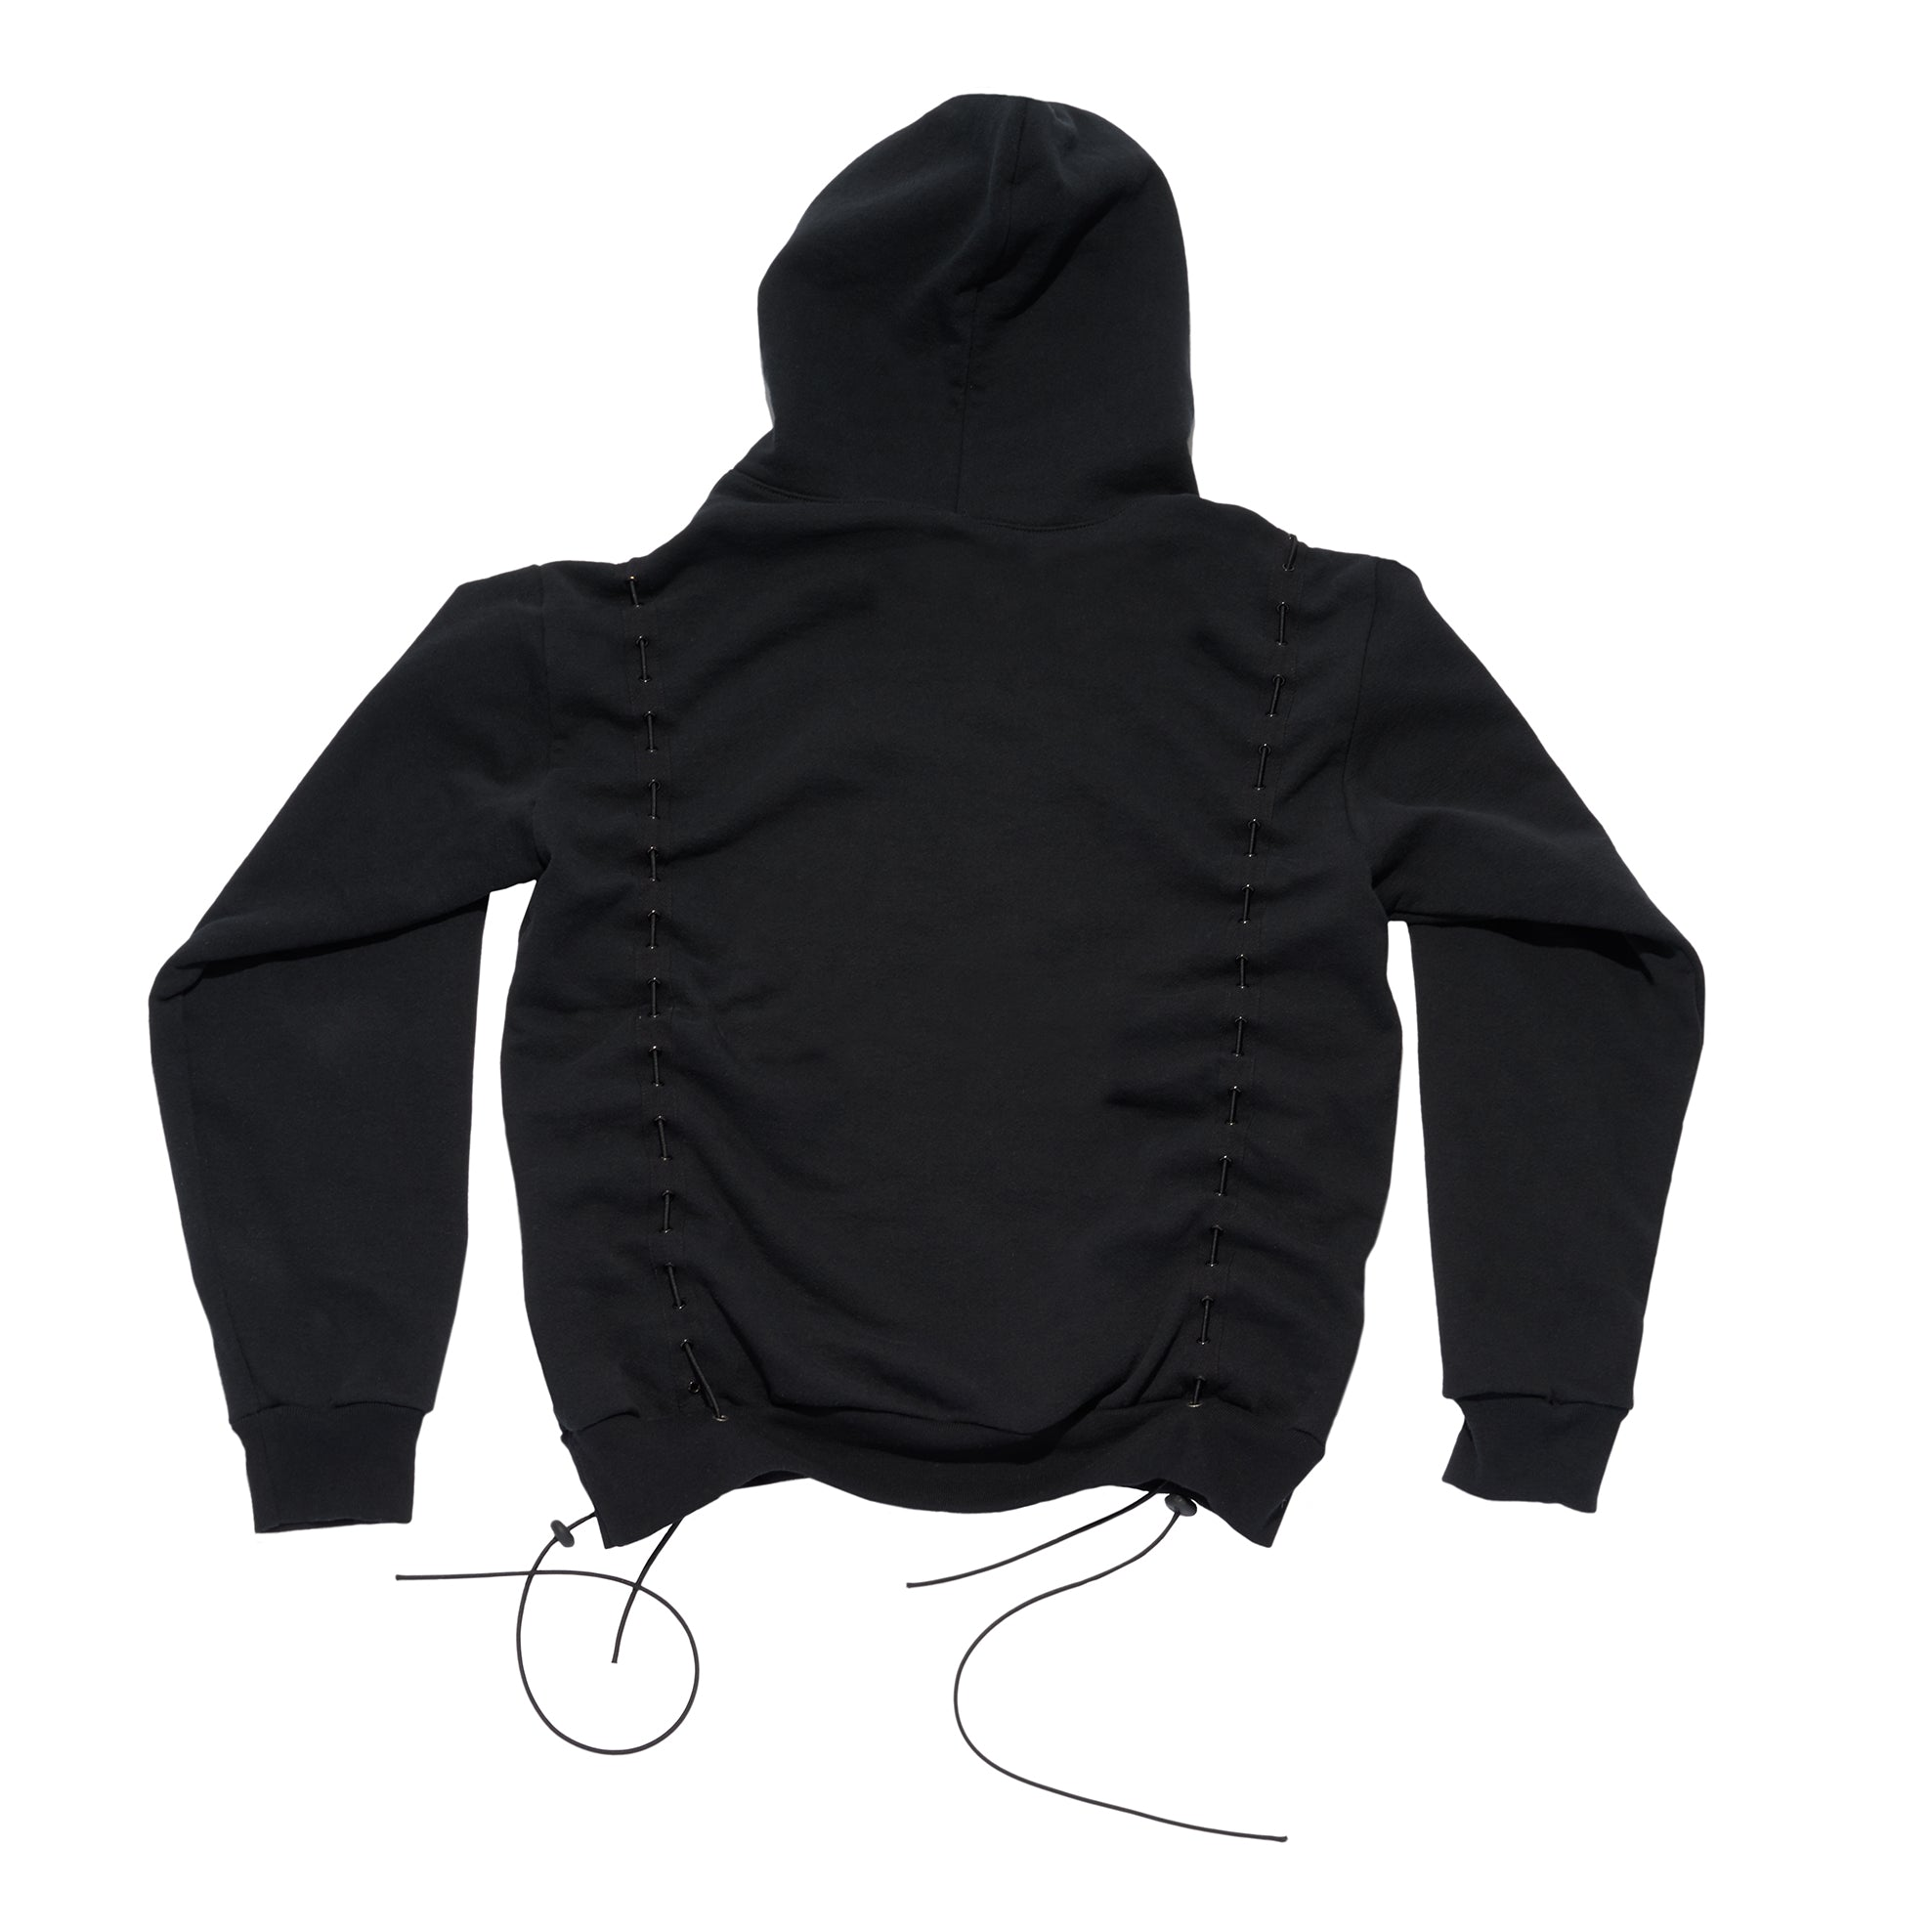 Mechanical Snake Hoodie Black